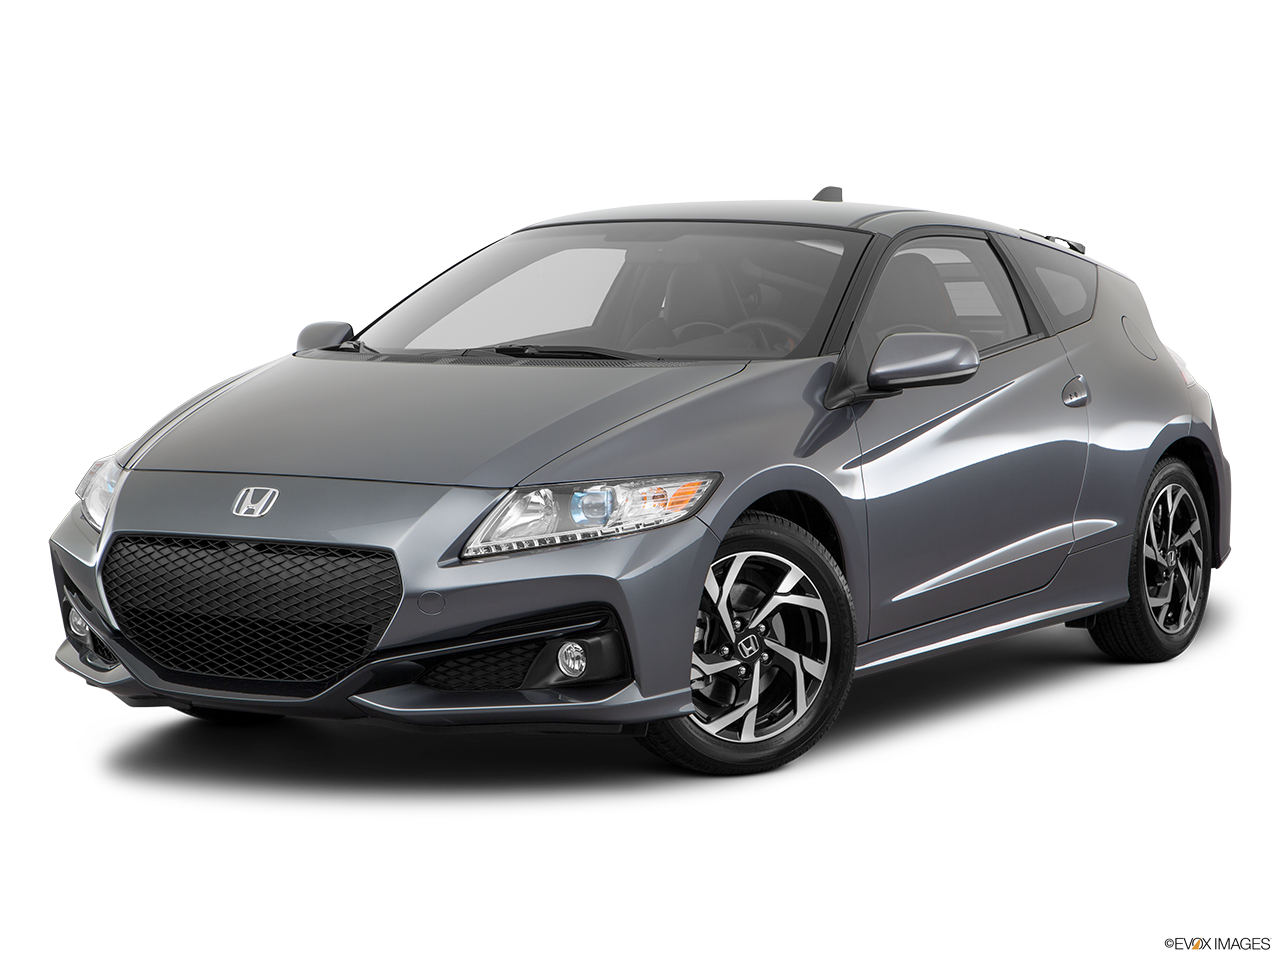 Test Drive A 2016 Honda CR-Z at Honda of El Cajon near San Diego